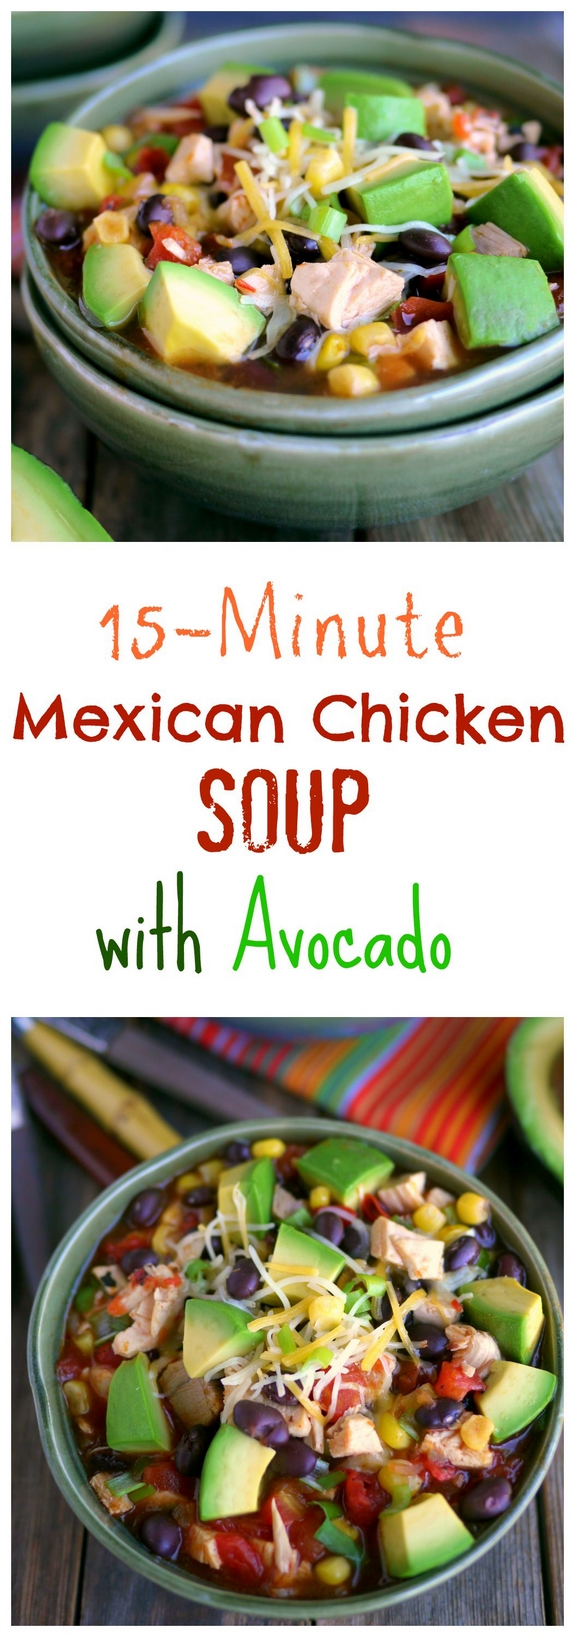 15-Minute Mexican Chicken Soup with Avocado + VIDEO ...